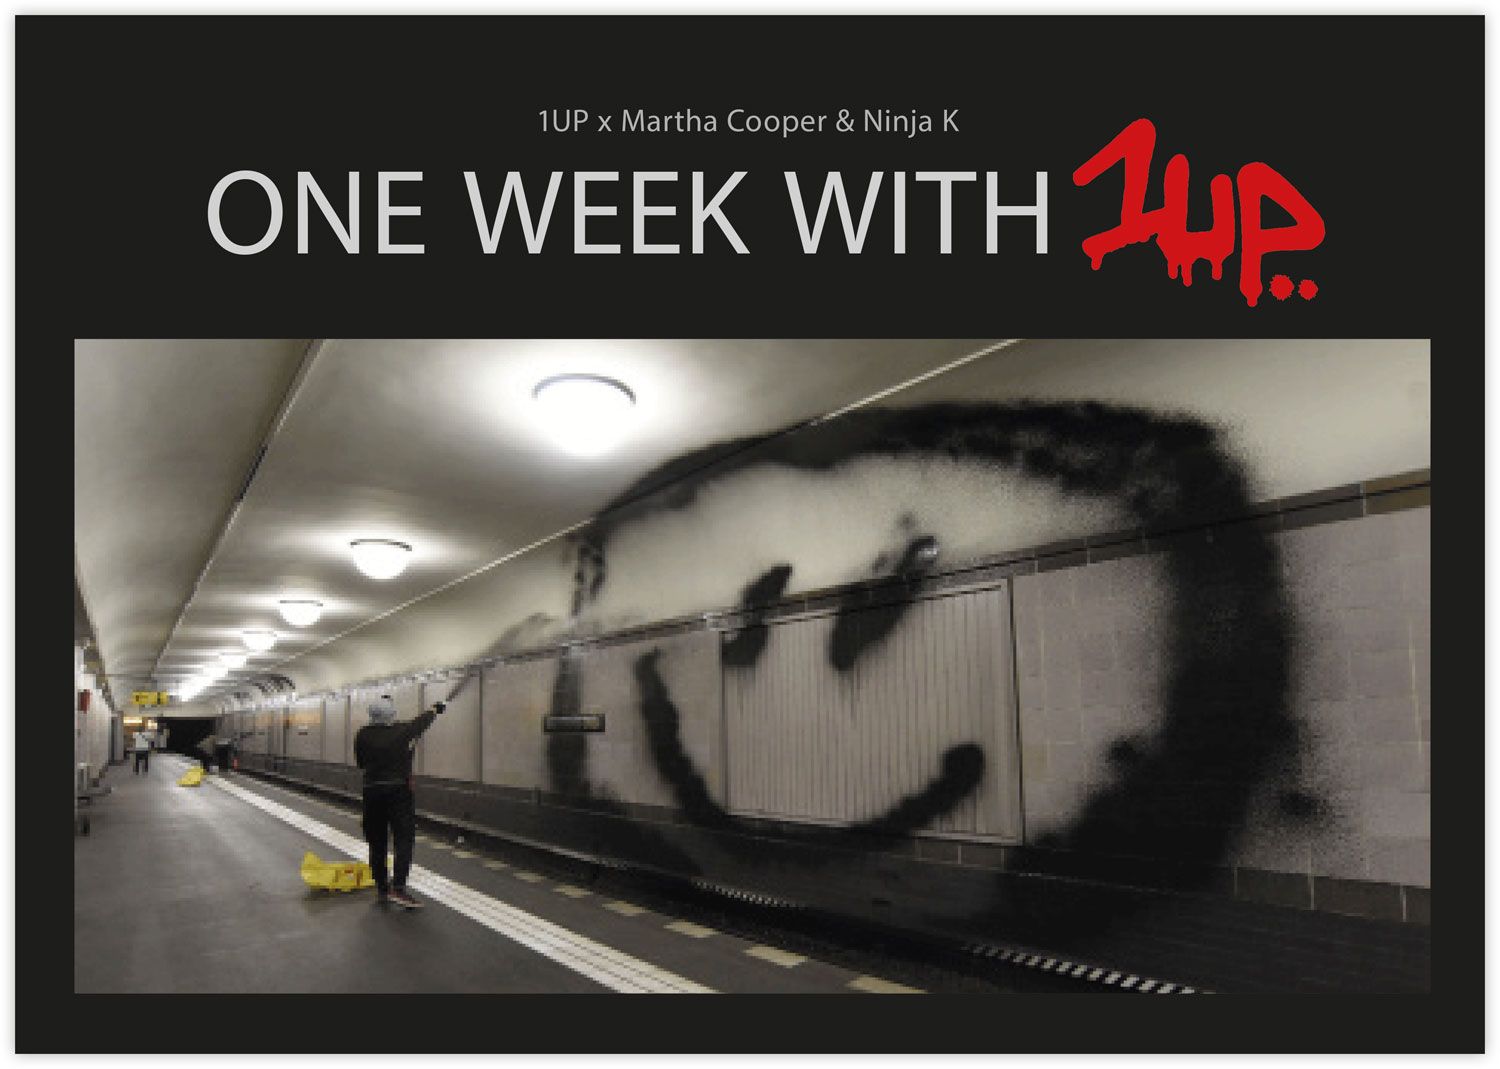 urban-media-one-week-with-1up-buch-1630-zoom-0